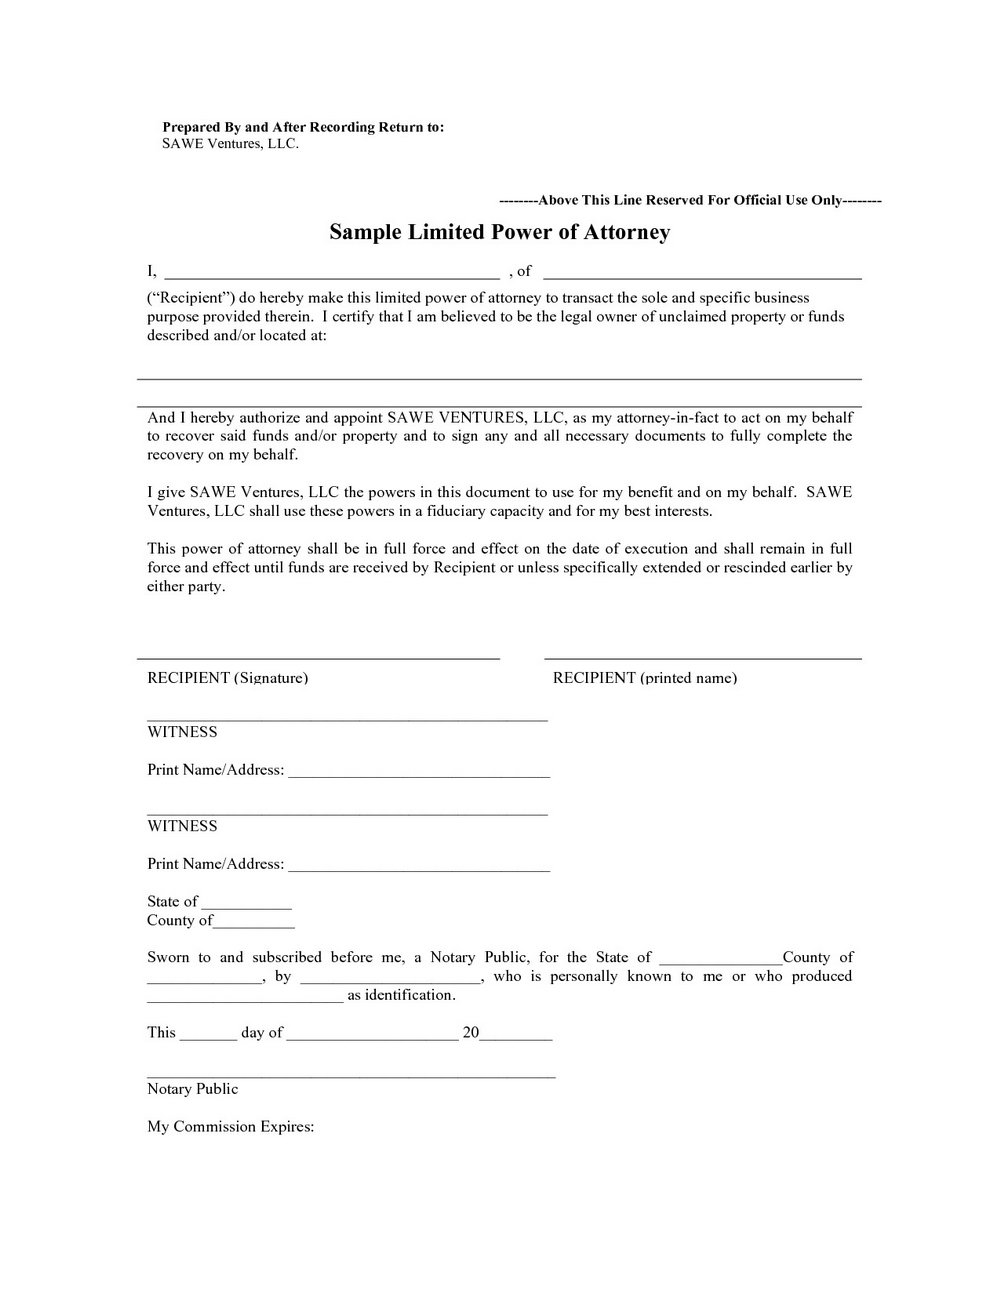 Special Power Of Attorney Template Canada